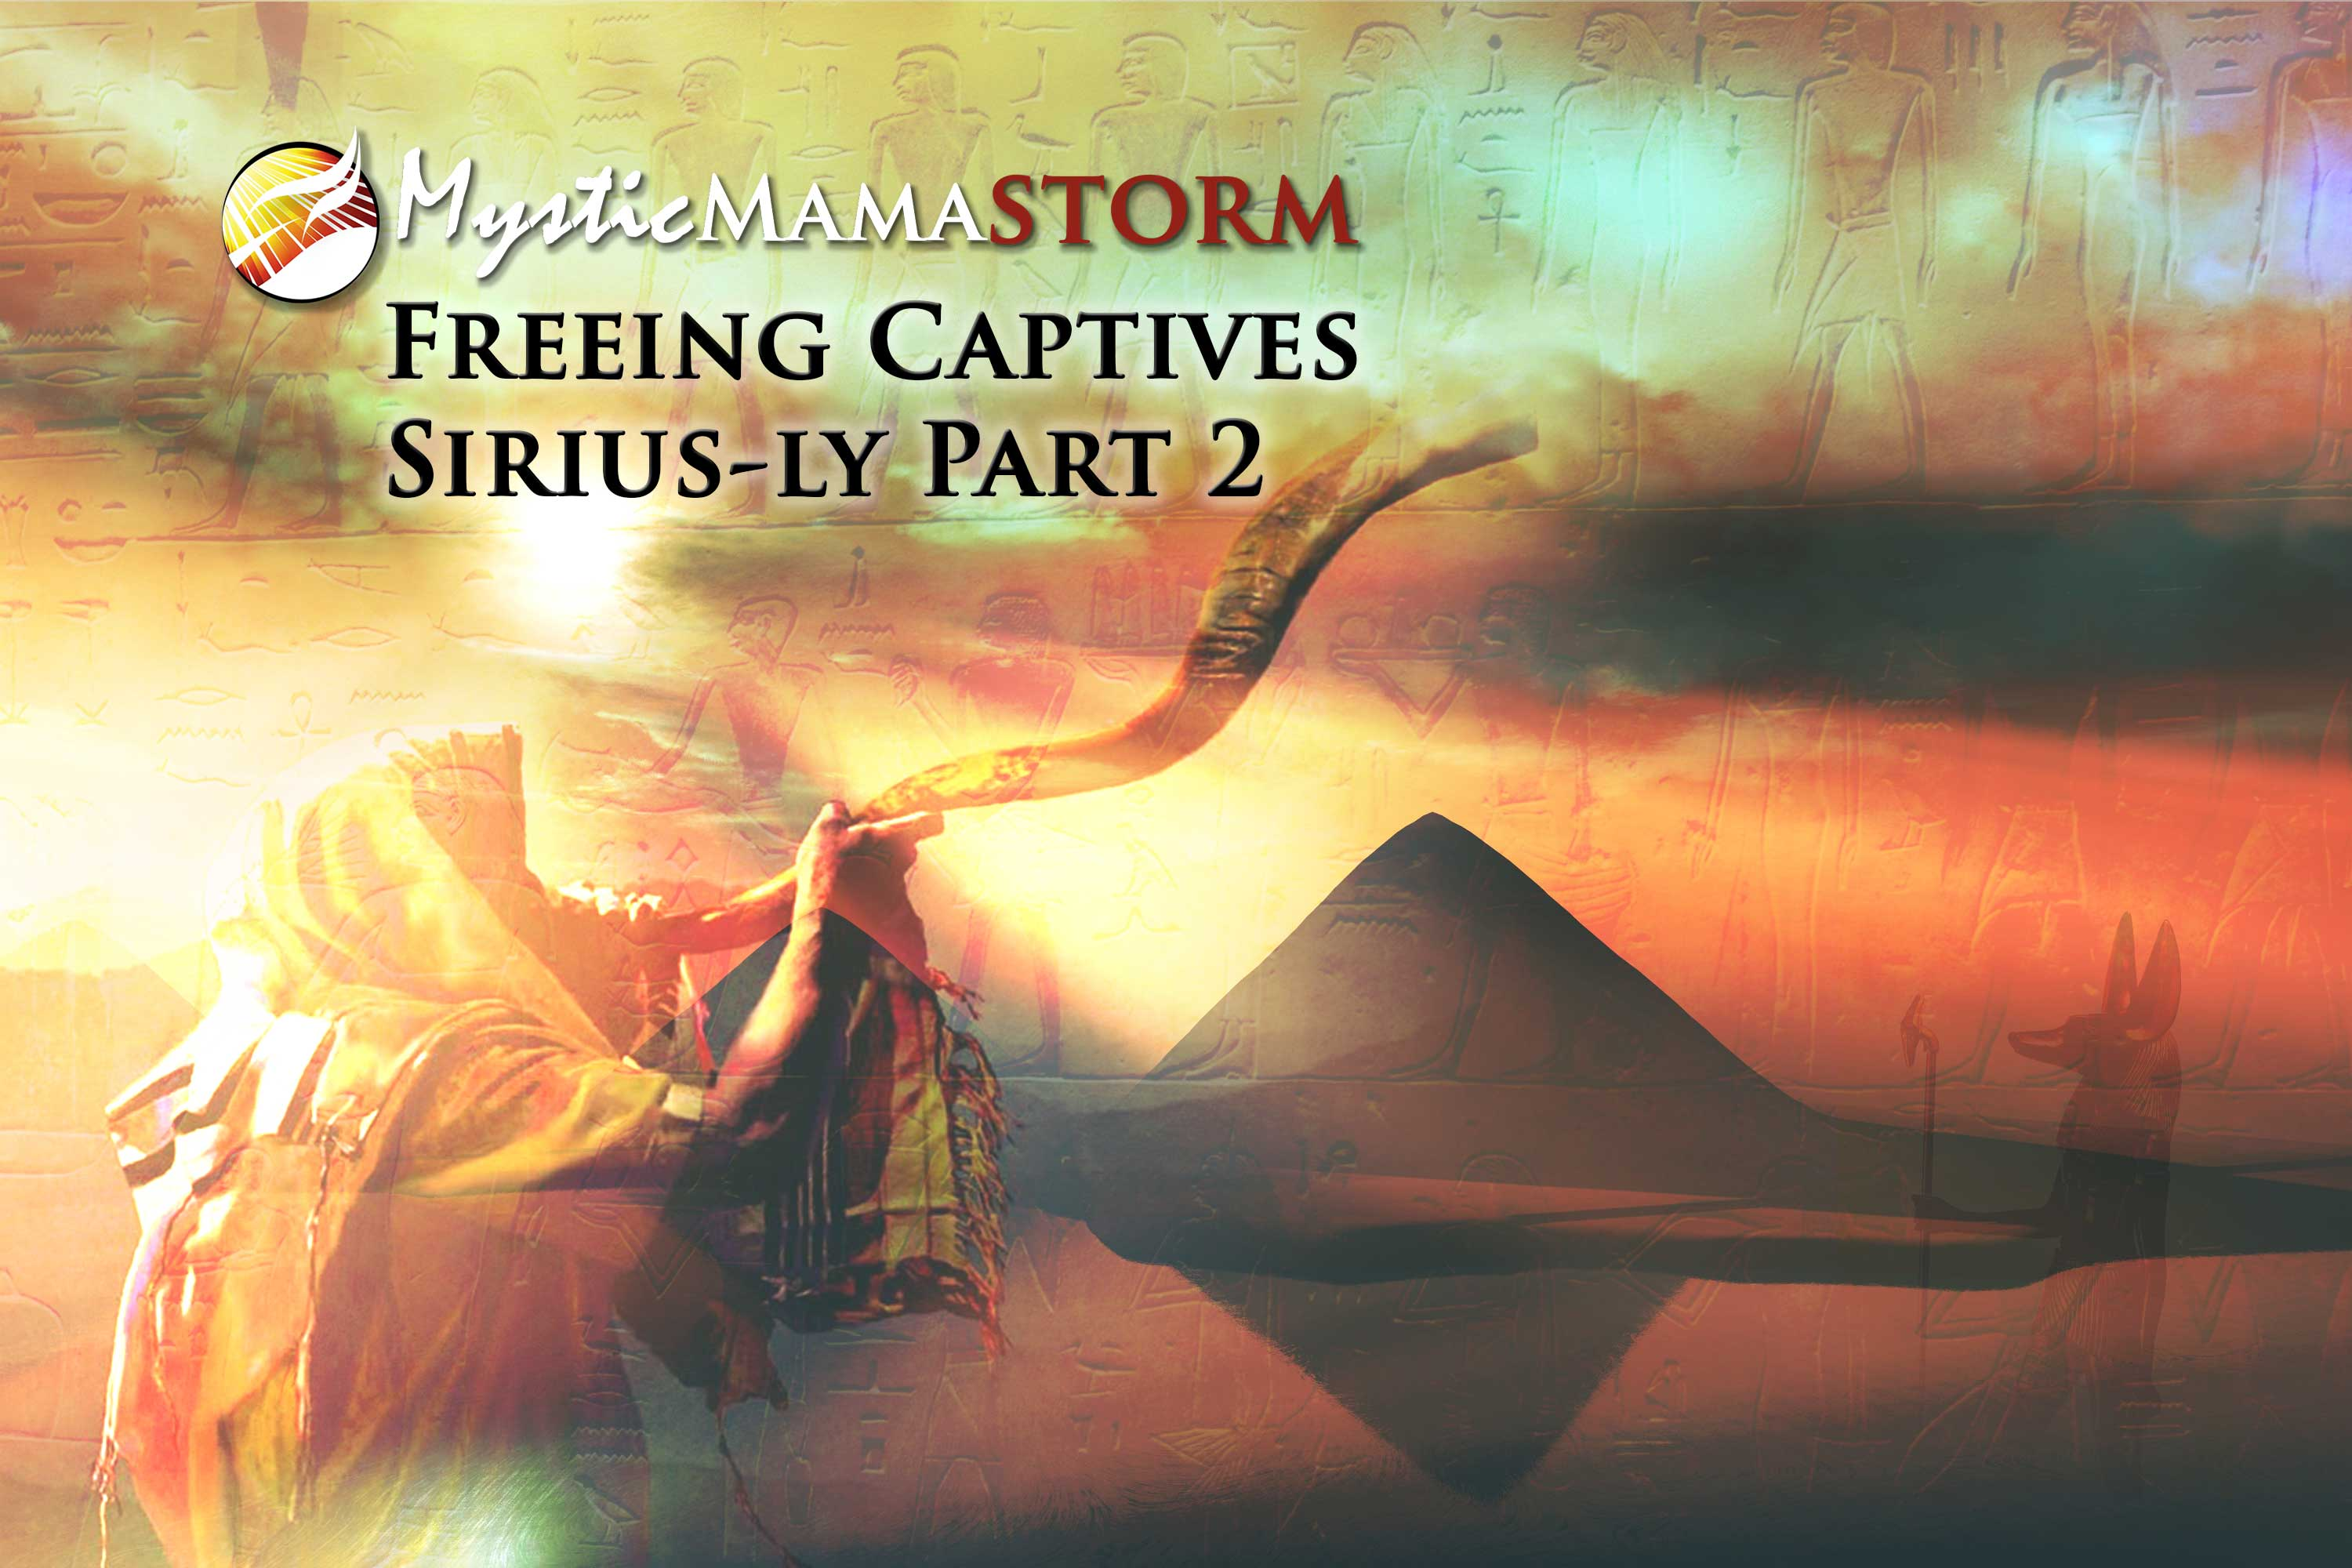 Freeing Captives Sirius-ly Part 2